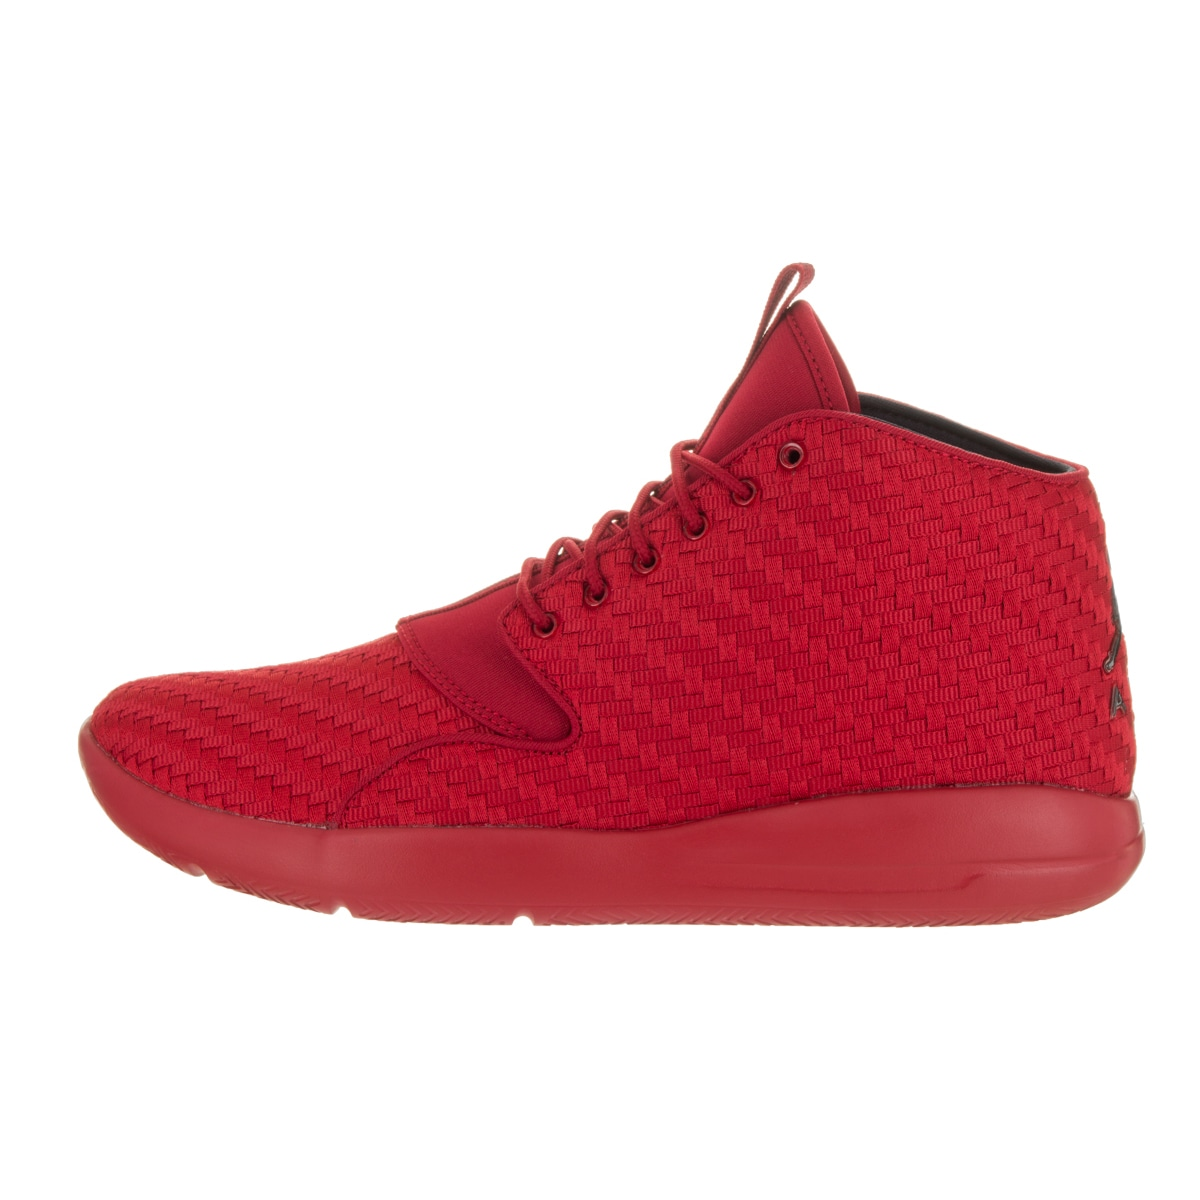 9f8643bbec81 Shop Nike Jordan Men s Jordan Eclipse Chukka Red Textile Basketball Shoes - Free  Shipping Today - Overstock - 14355627